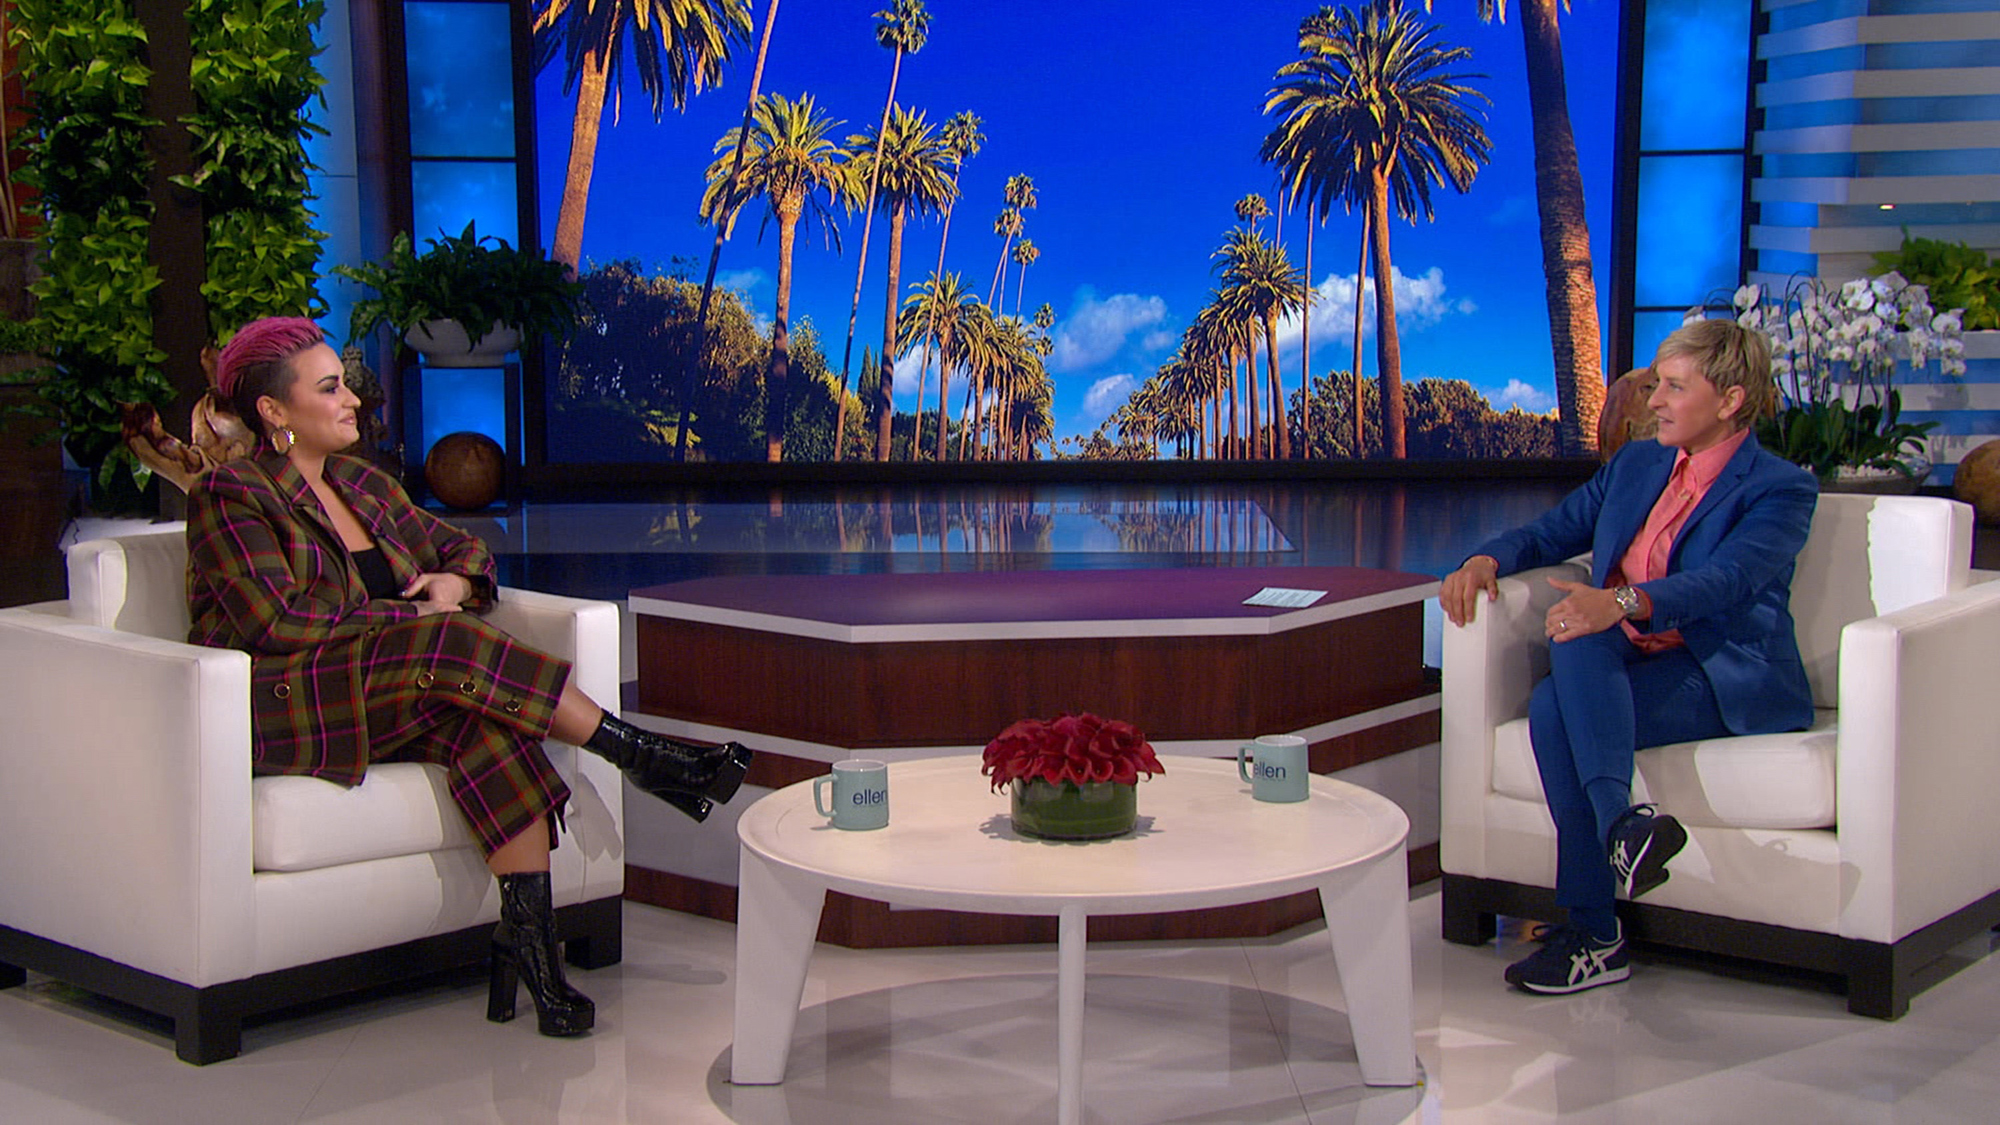 Demi Lovato makes an in-person appearance on The Ellen DeGeneres Show